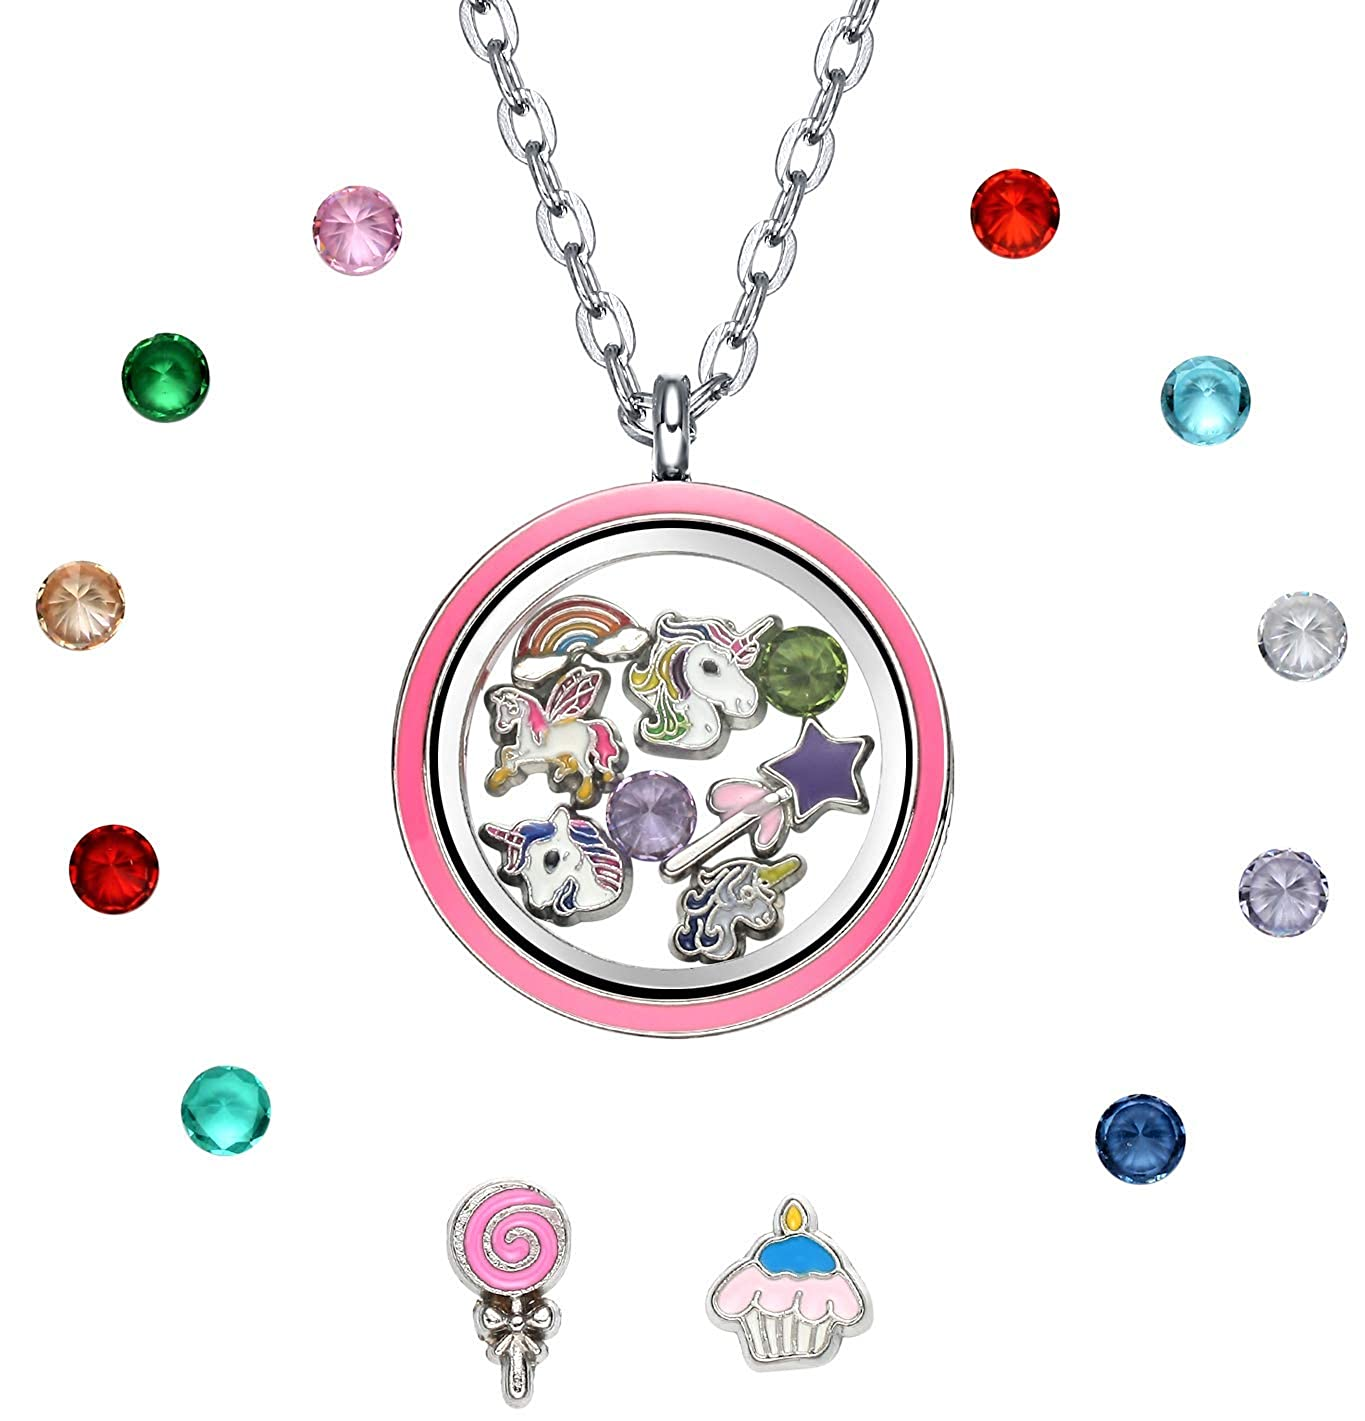 Pink Unicorn Floating Charm Memory Locket Pendant Necklace, Unicorn Jewelry Gifts for Girls W.H. DuJour B07GKFF4YB_US